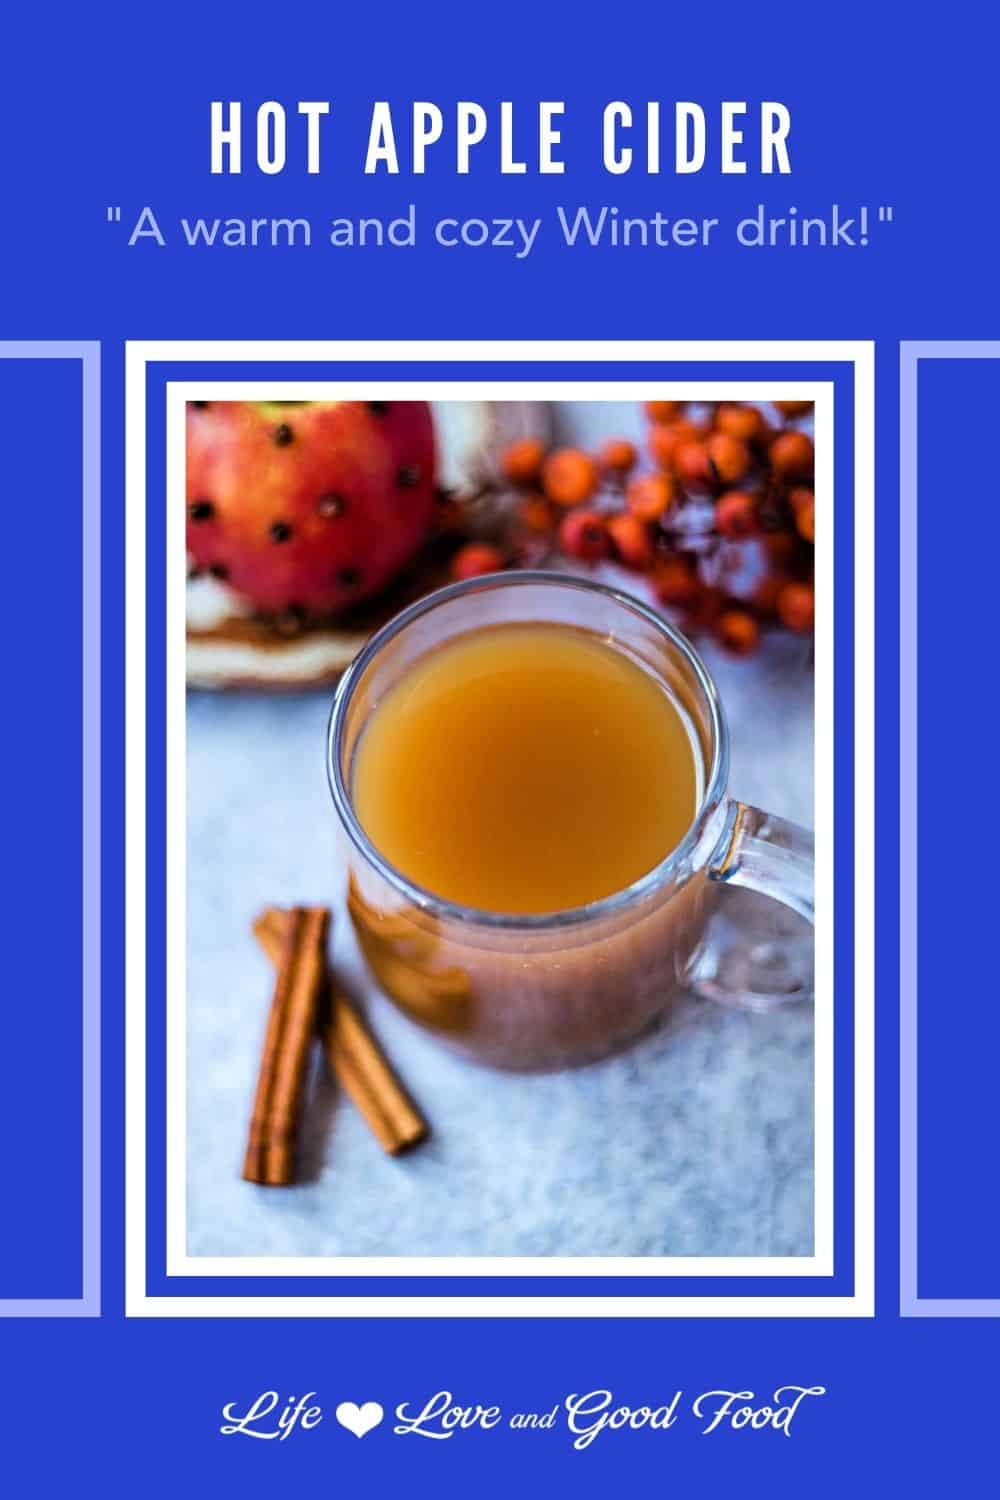 This easy Hot Apple Cider recipe makes a tasty non-alcoholic hot drink flavored with cinnamon, cloves, and allspice everyone can enjoy on chilly Autumn or Winter days. A warm mug of perfectly spiced and lightly sweetened apple cider is perfect for Halloween or harvest parties, Thanksgiving, Christmas, or any time you're in the mood for a apple-flavored treat.